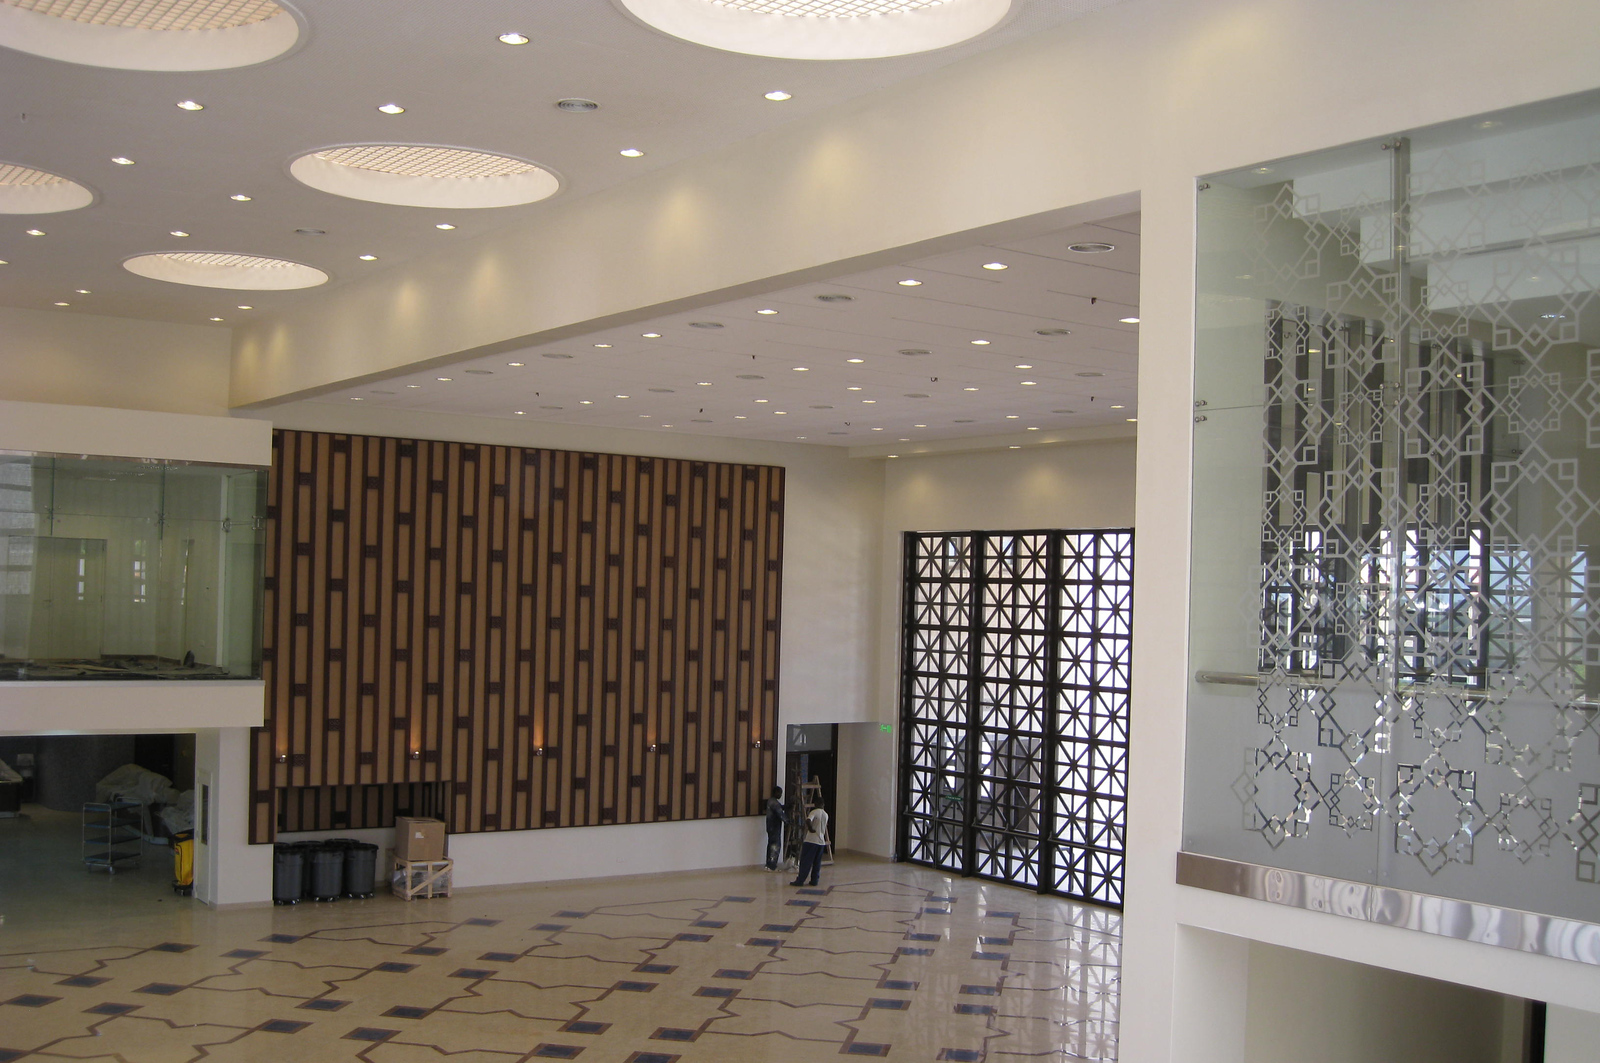 Inside the Commons Building at the Aga Khan Academy, Mombasa